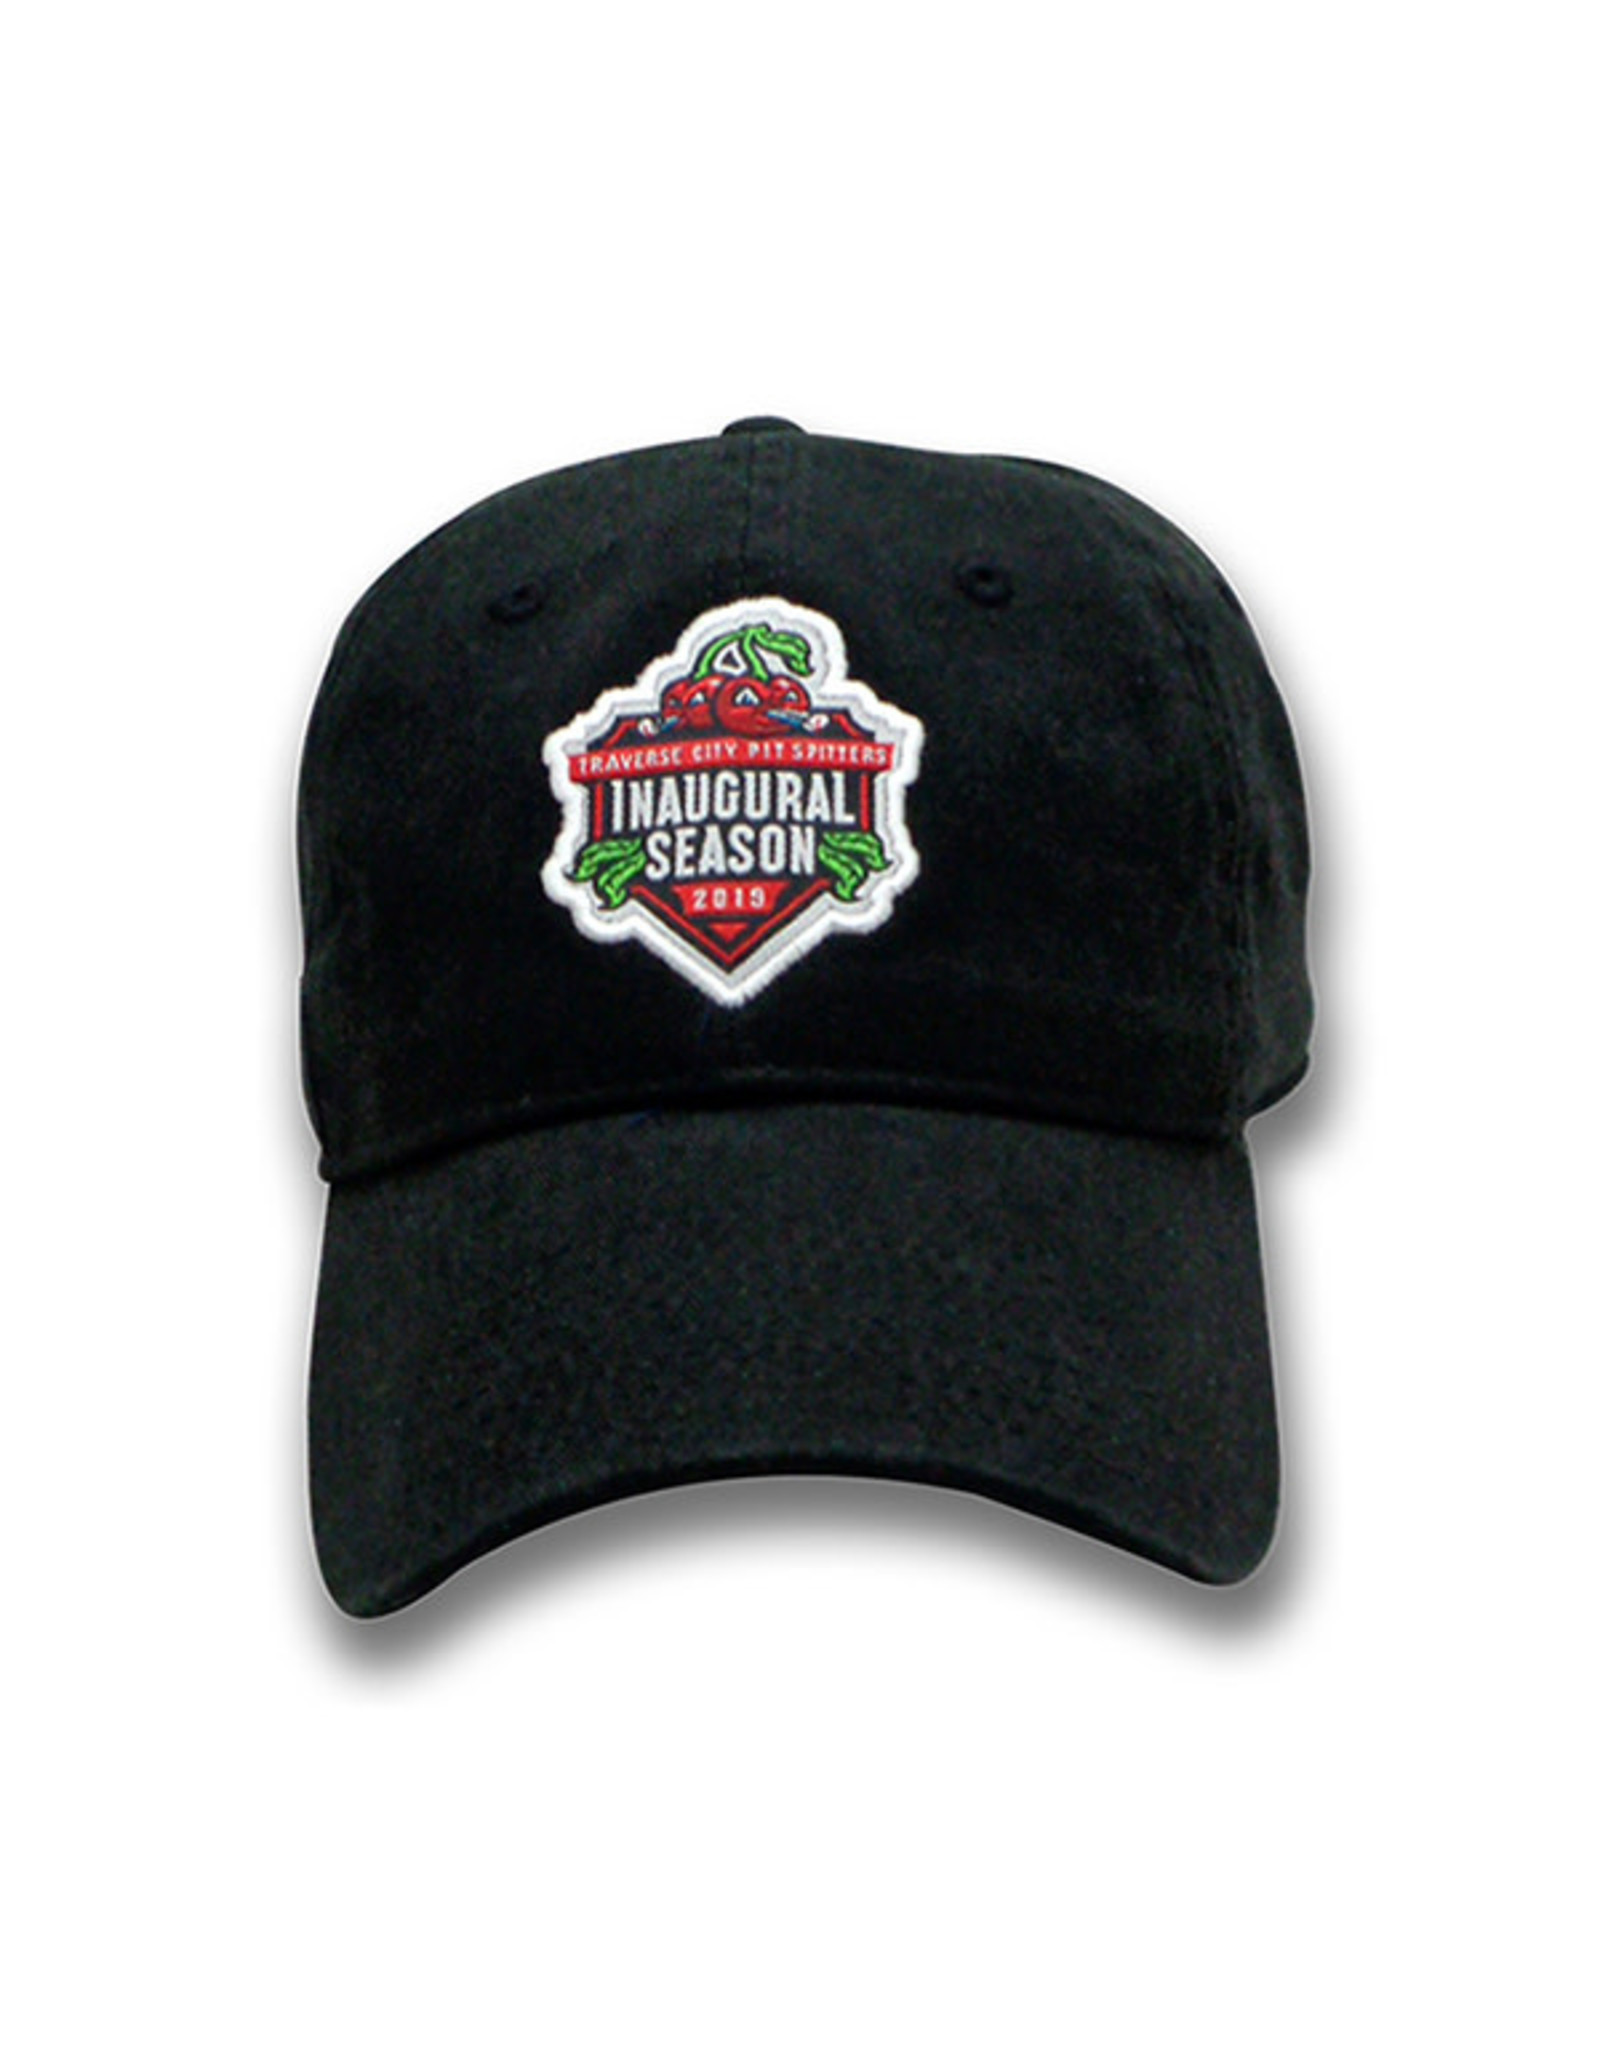 The Game 1218 Inaugural Season Unstructured Cap CLEARANCE